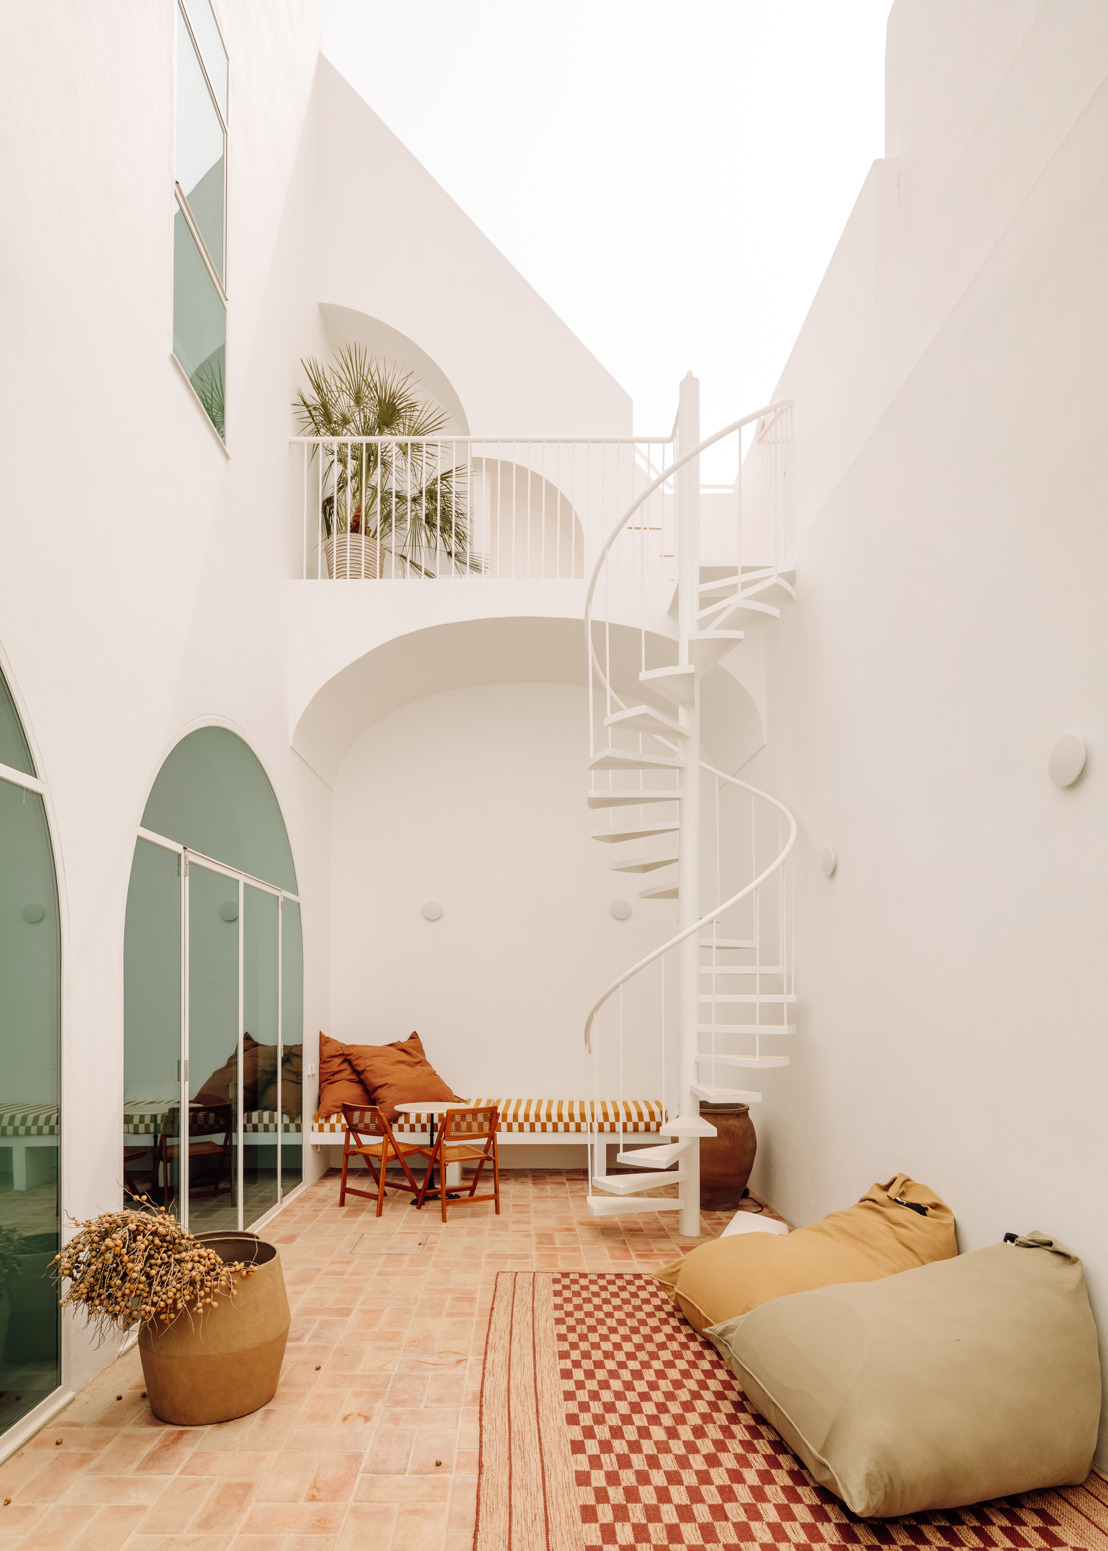 New hospitality brand theAddresses welcomes guests to second guesthouse Casa Dois